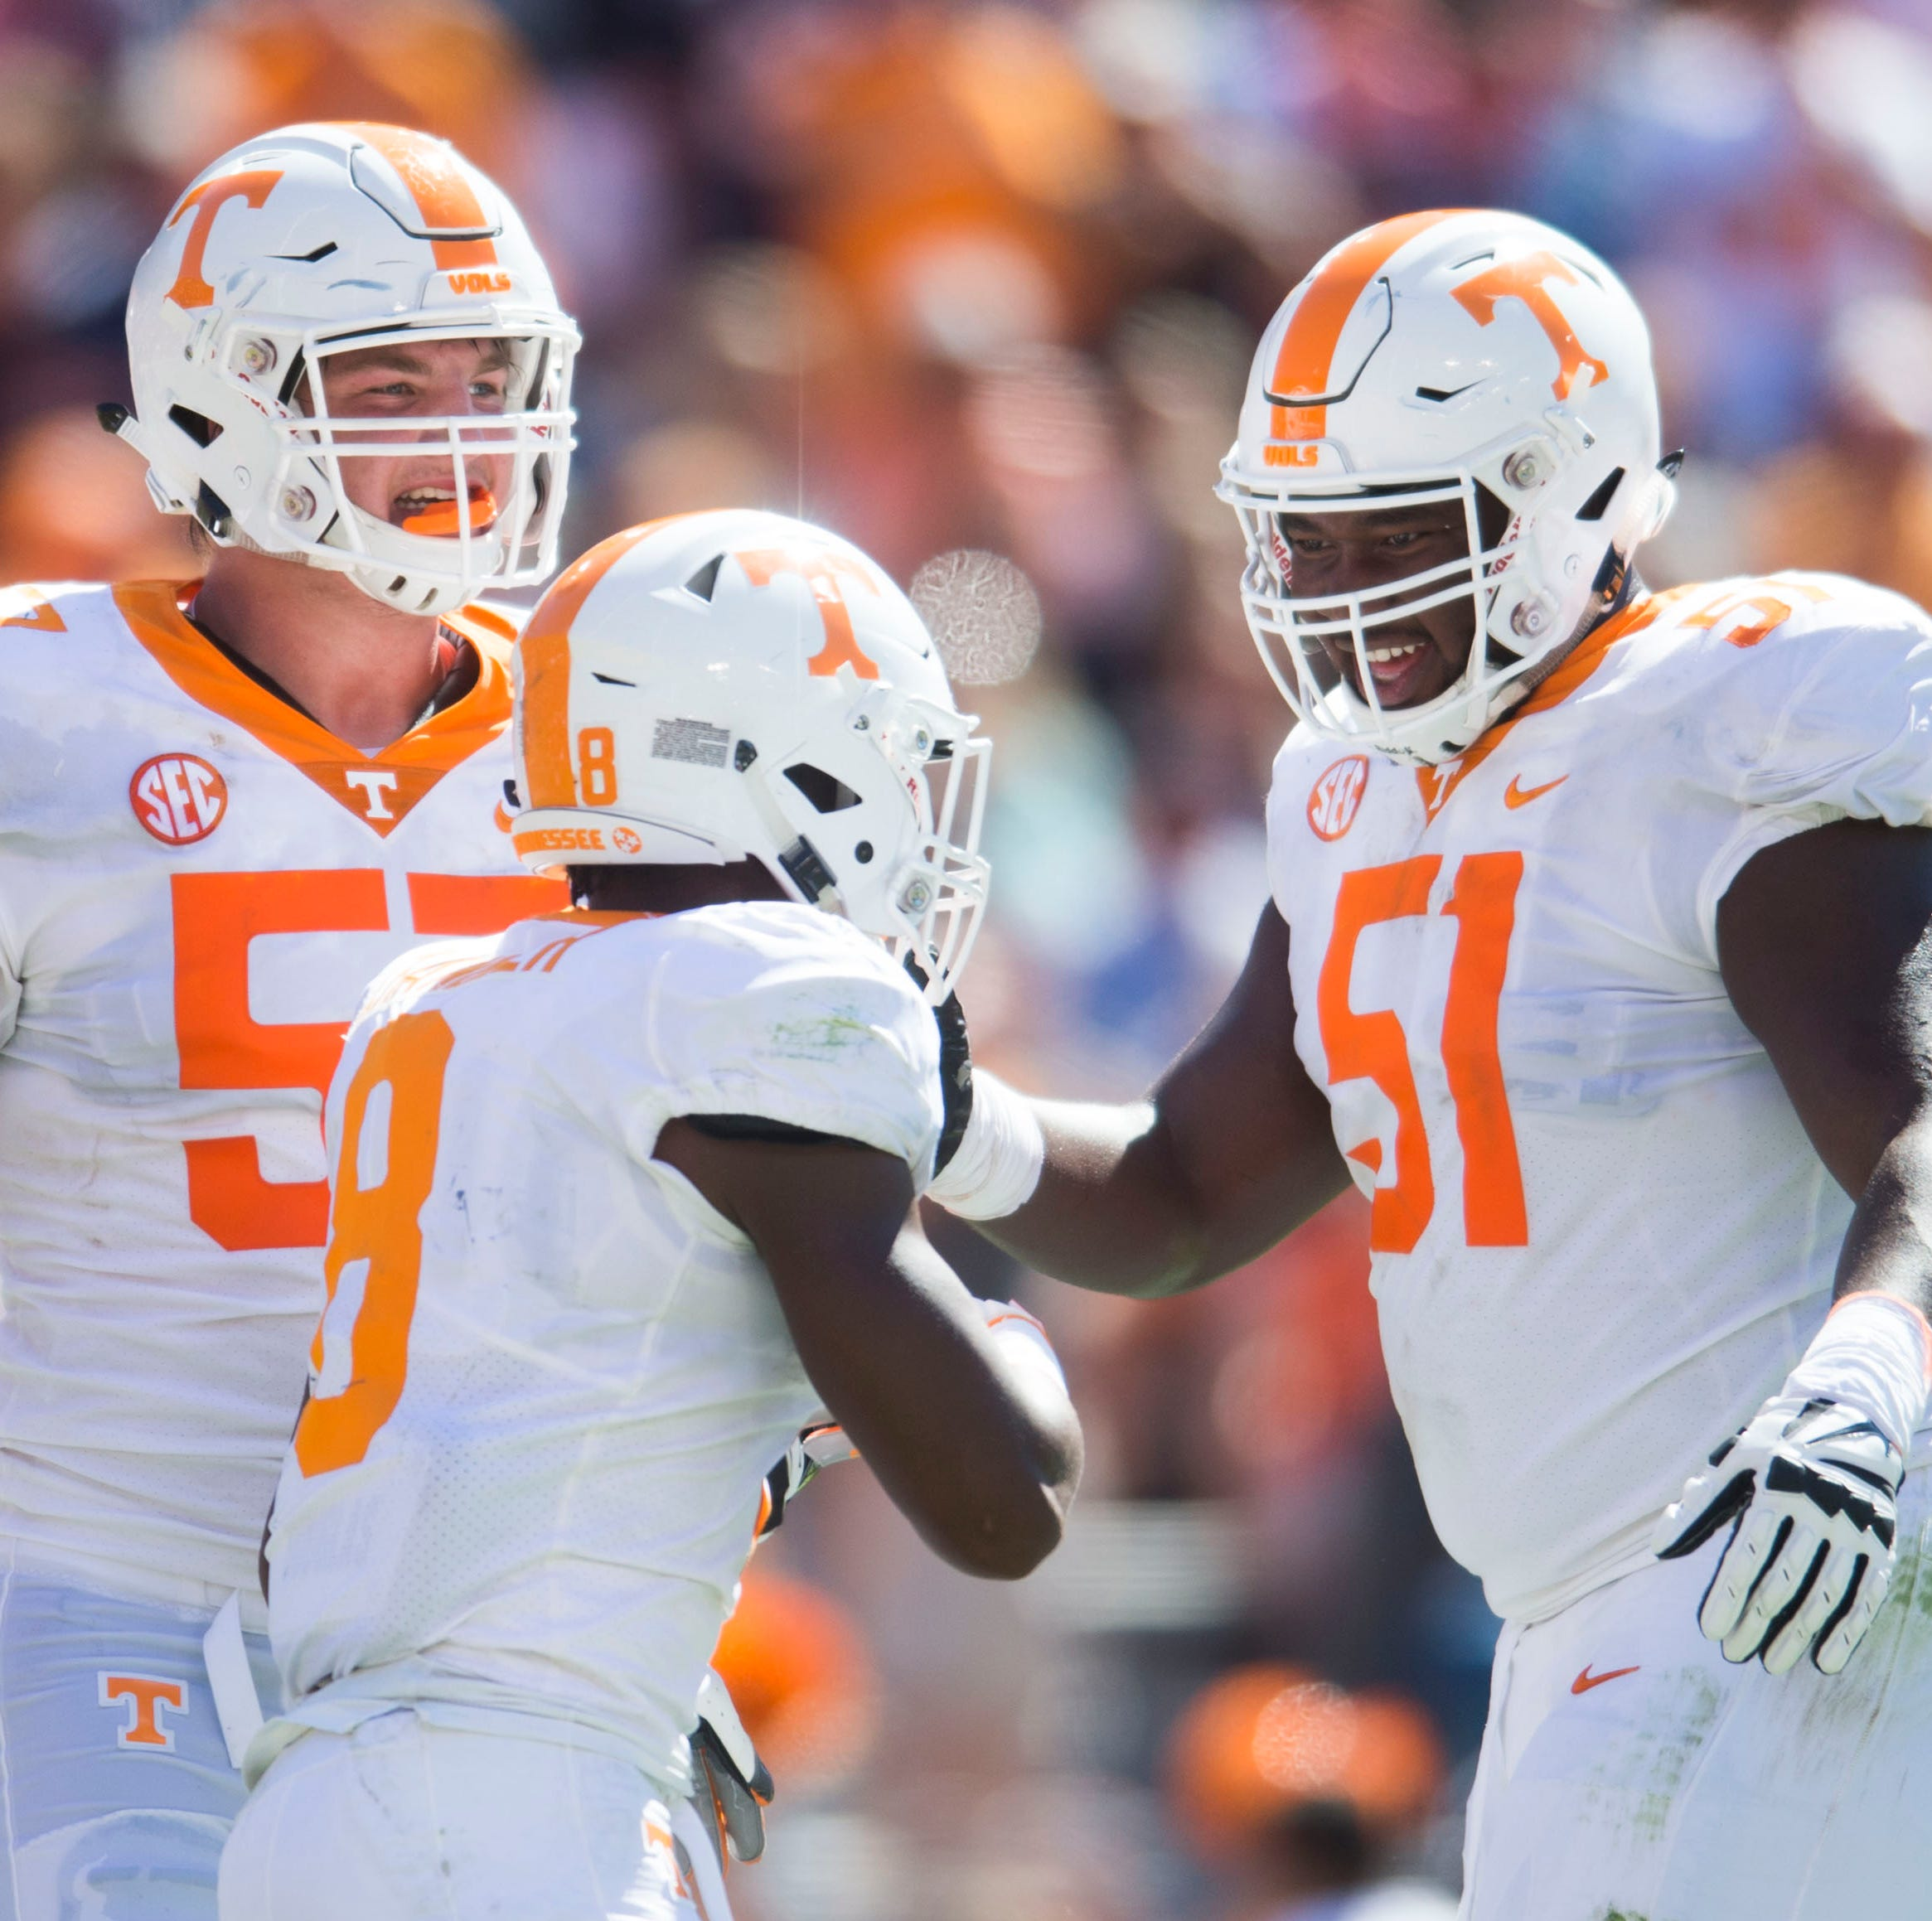 Former Tennessee lineman Drew Richmond to transfer to Southern Cal